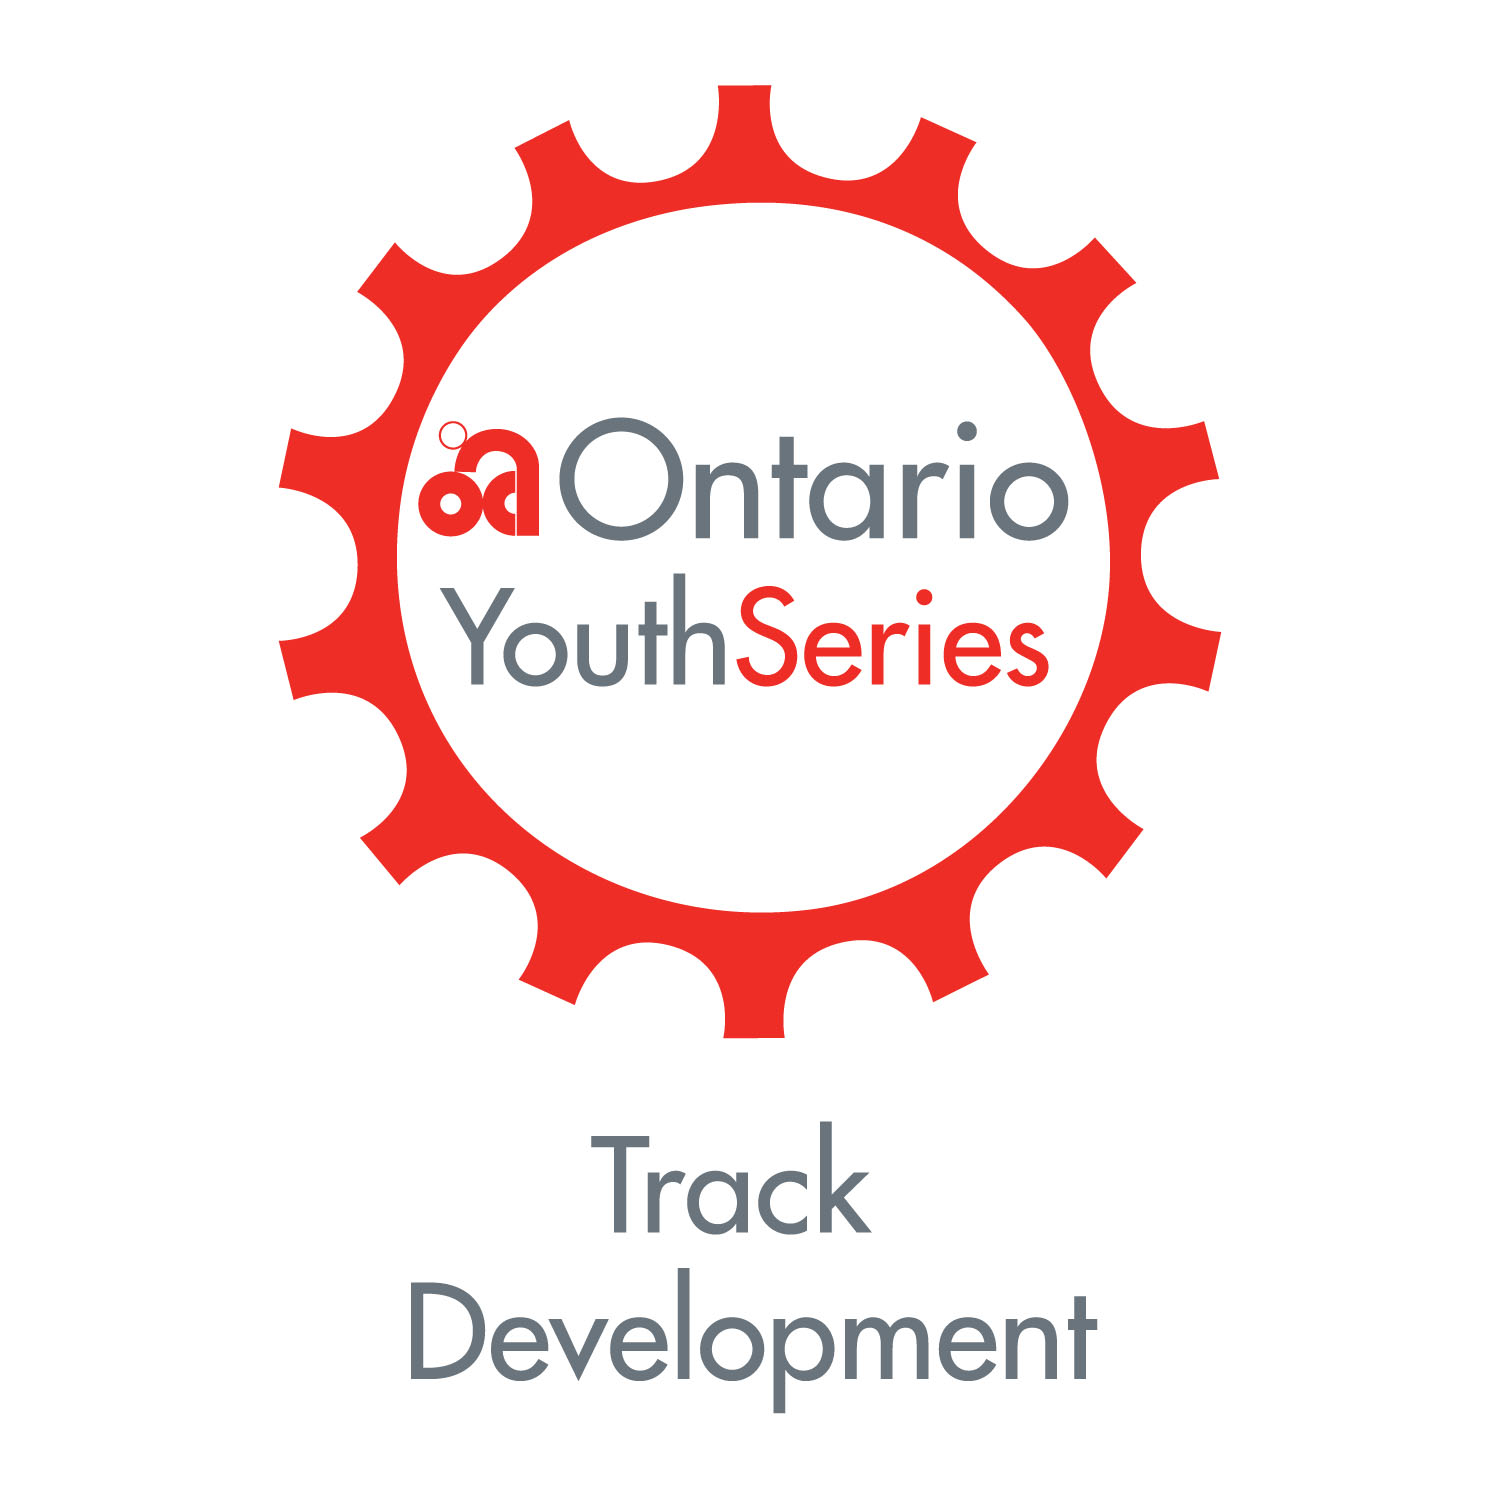 Youth Track Development Series Important Information